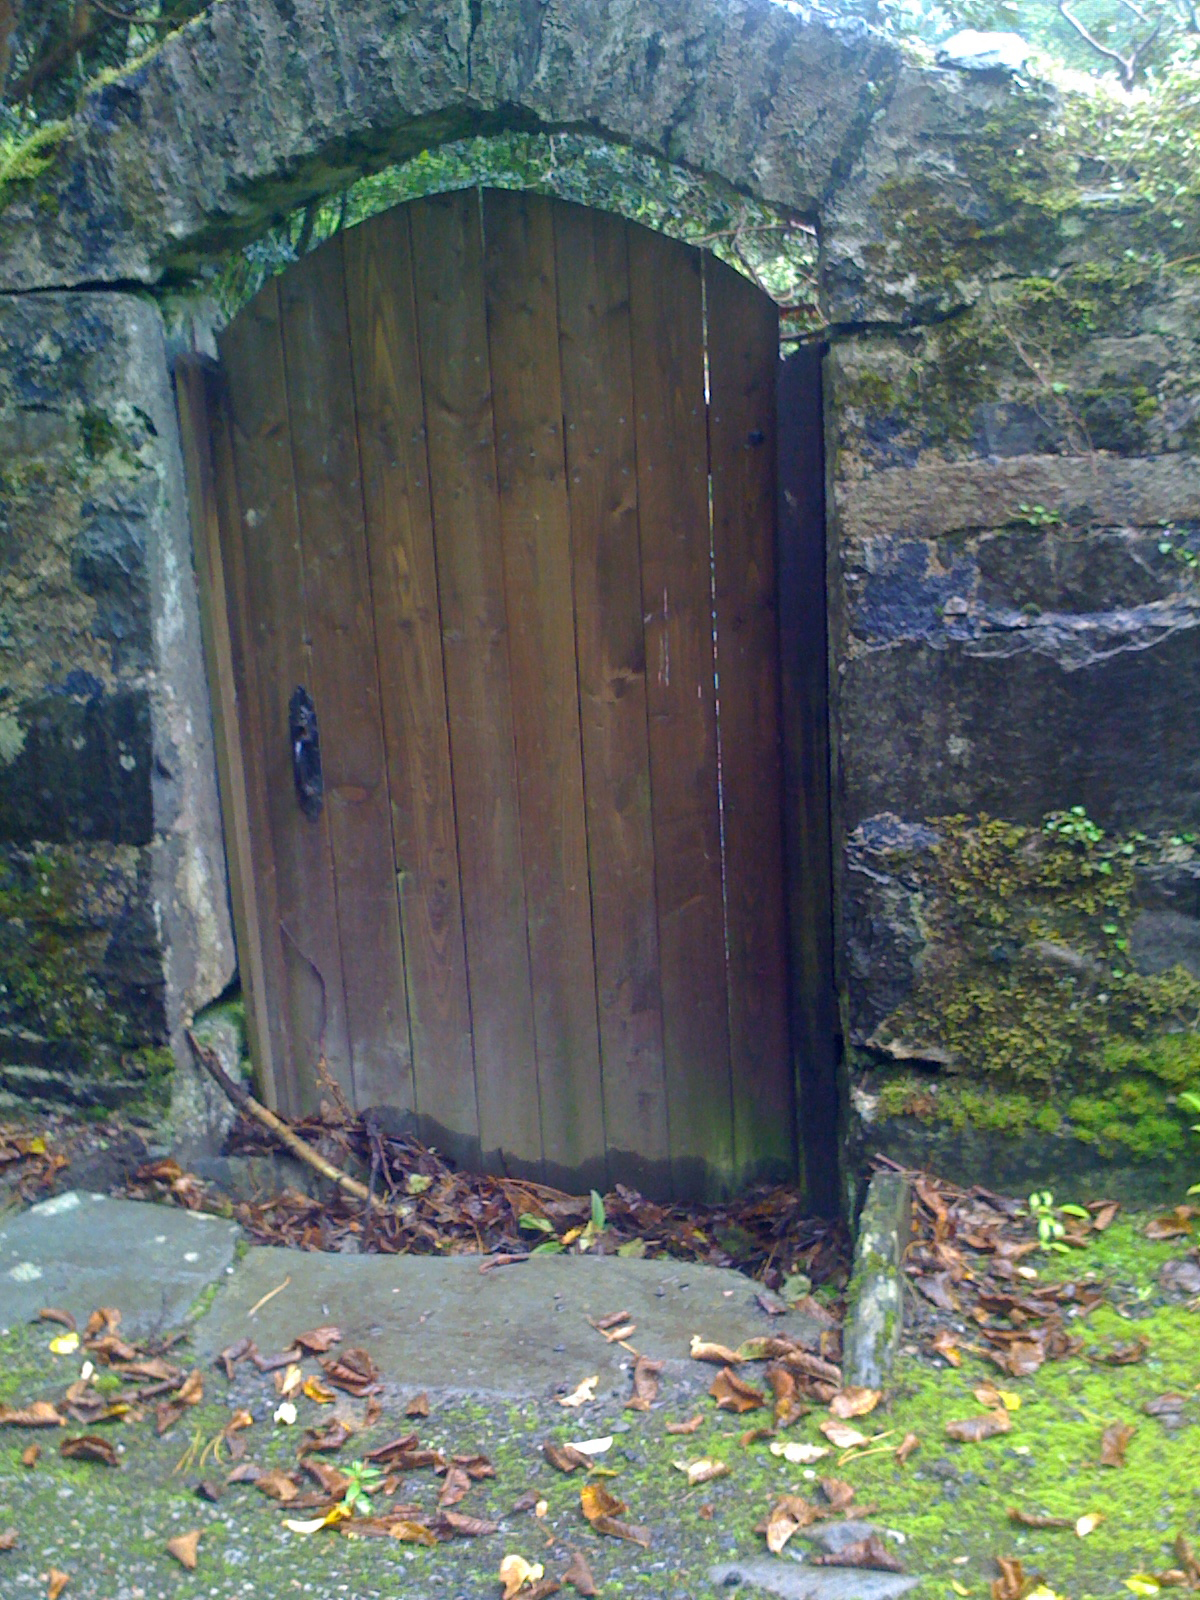 Doorway To Walled Garden, Isle Of Gigha